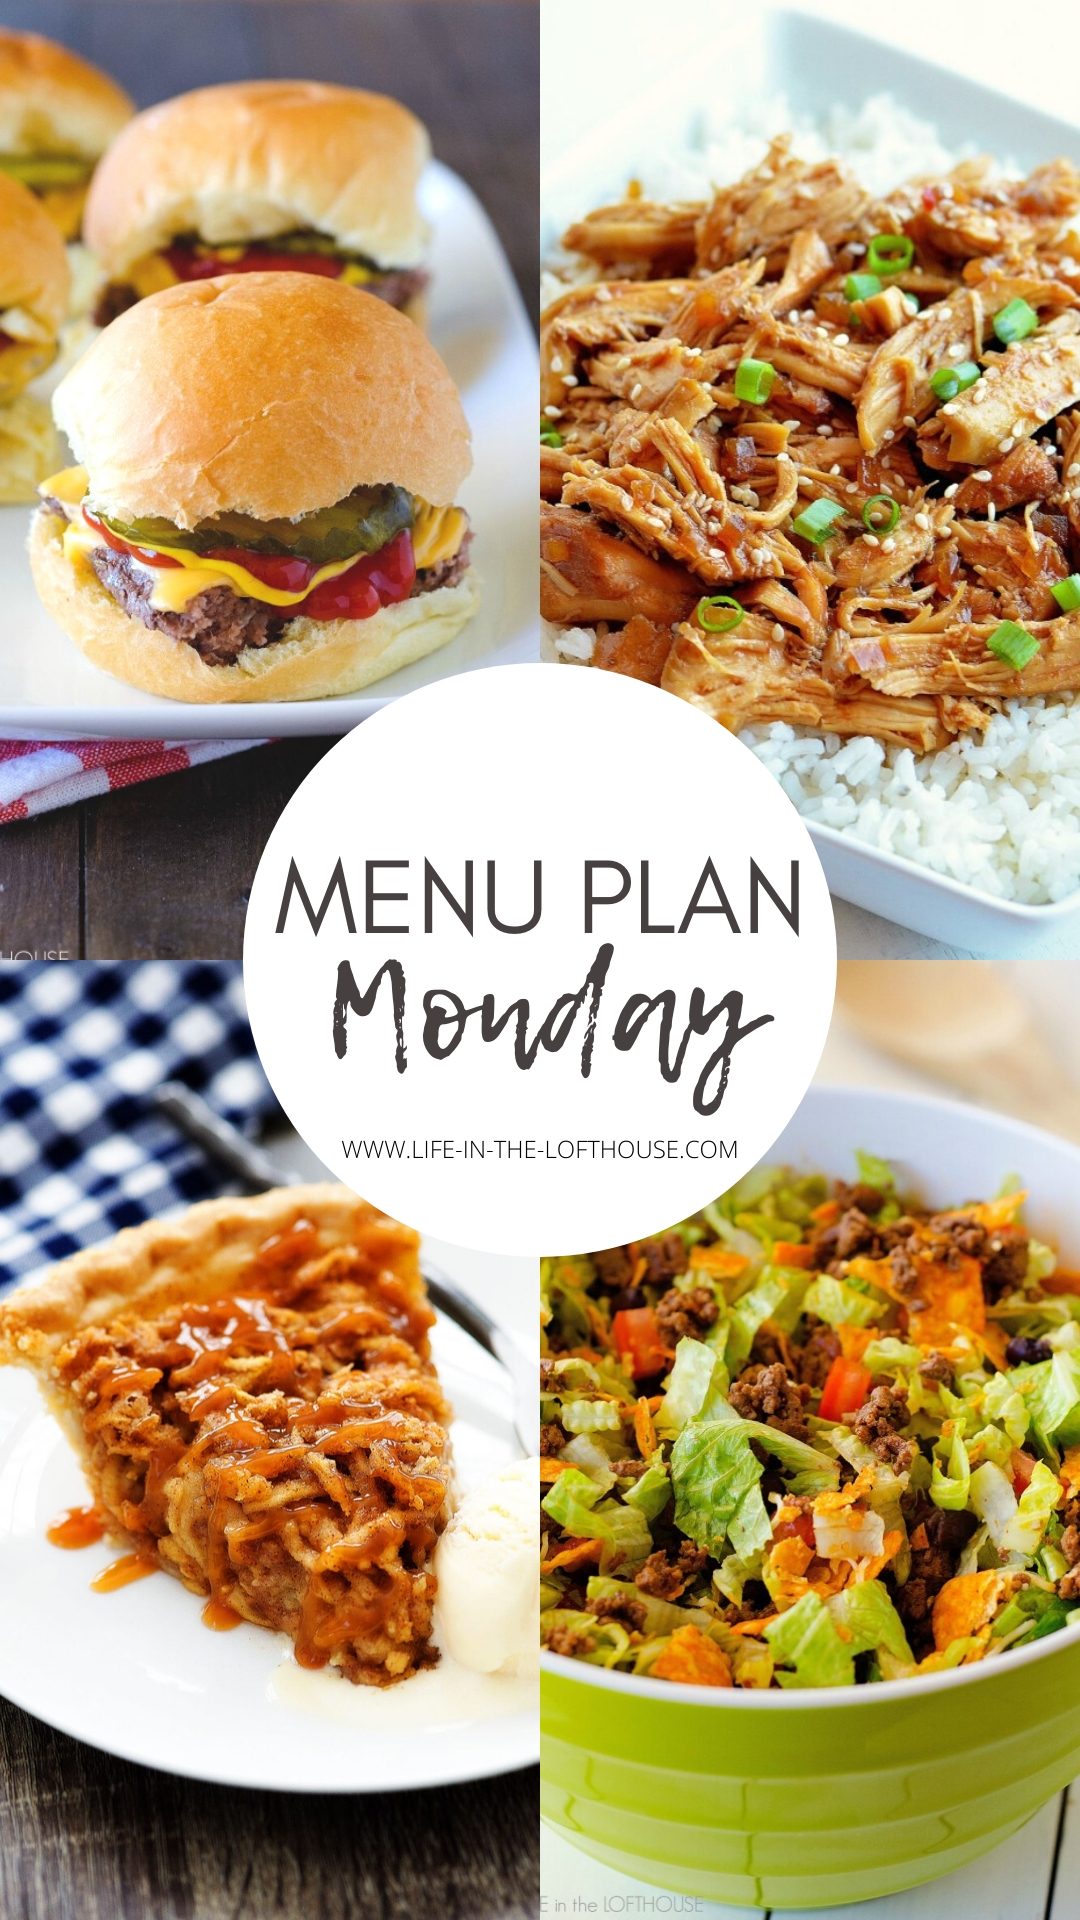 Menu Plan Monday is a list of dinner recipes. Each menu includes six dinner ideas and one dessert. Life-in-the-Lofthouse.com